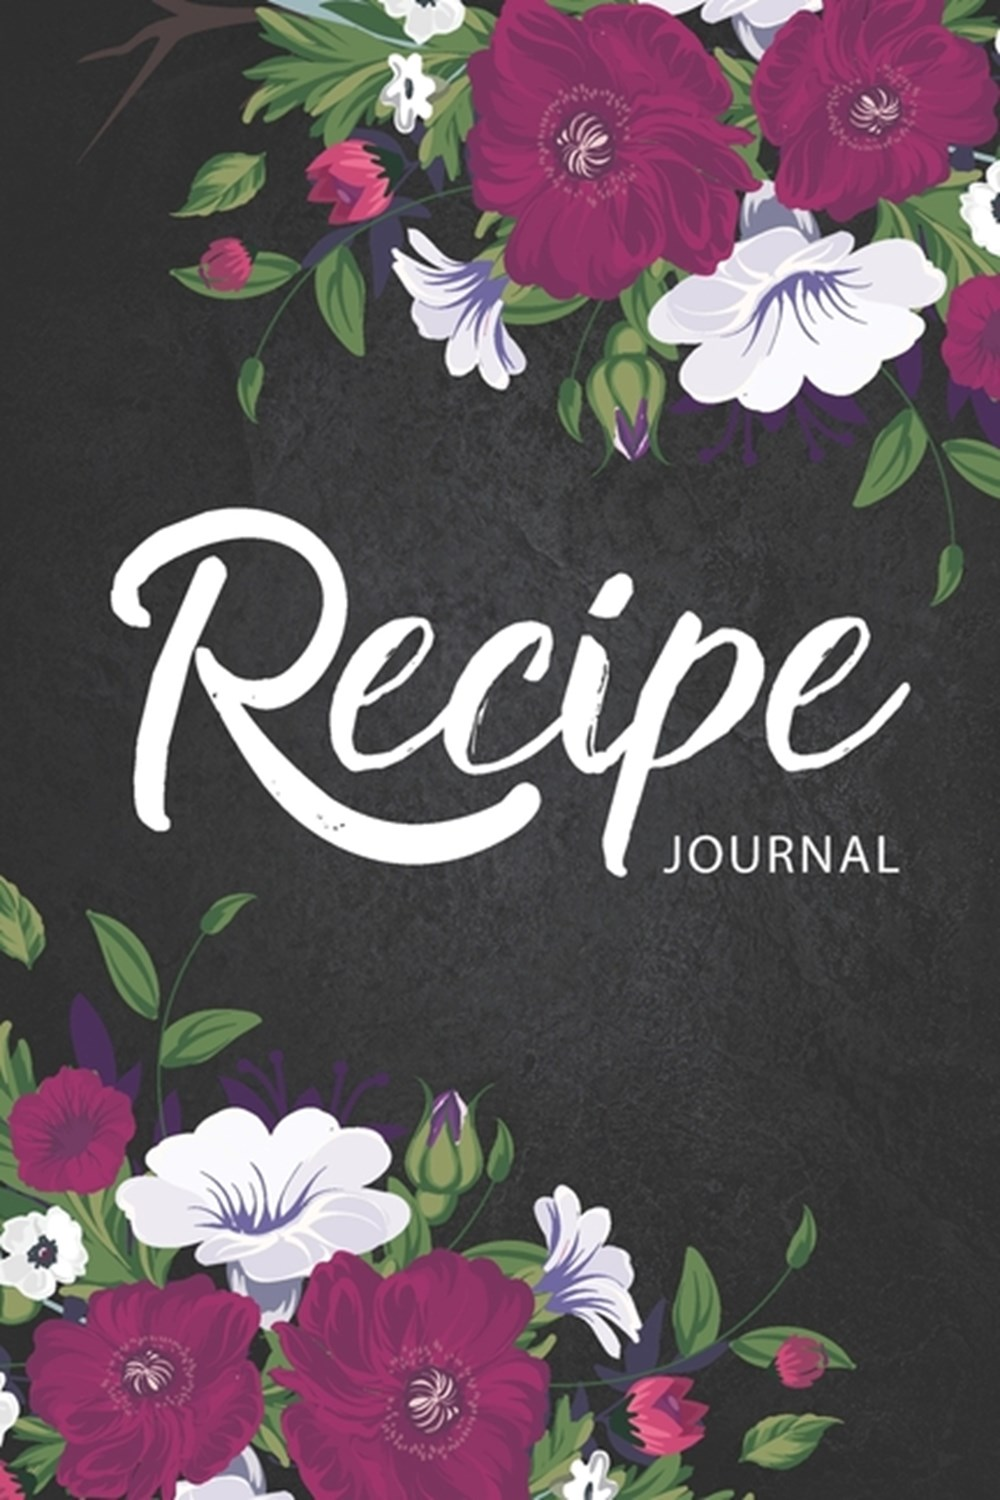 Recipe Journal Flower Cover - 110 Blank Recipe Journal to Write In - Favorite Family Recipes and Not